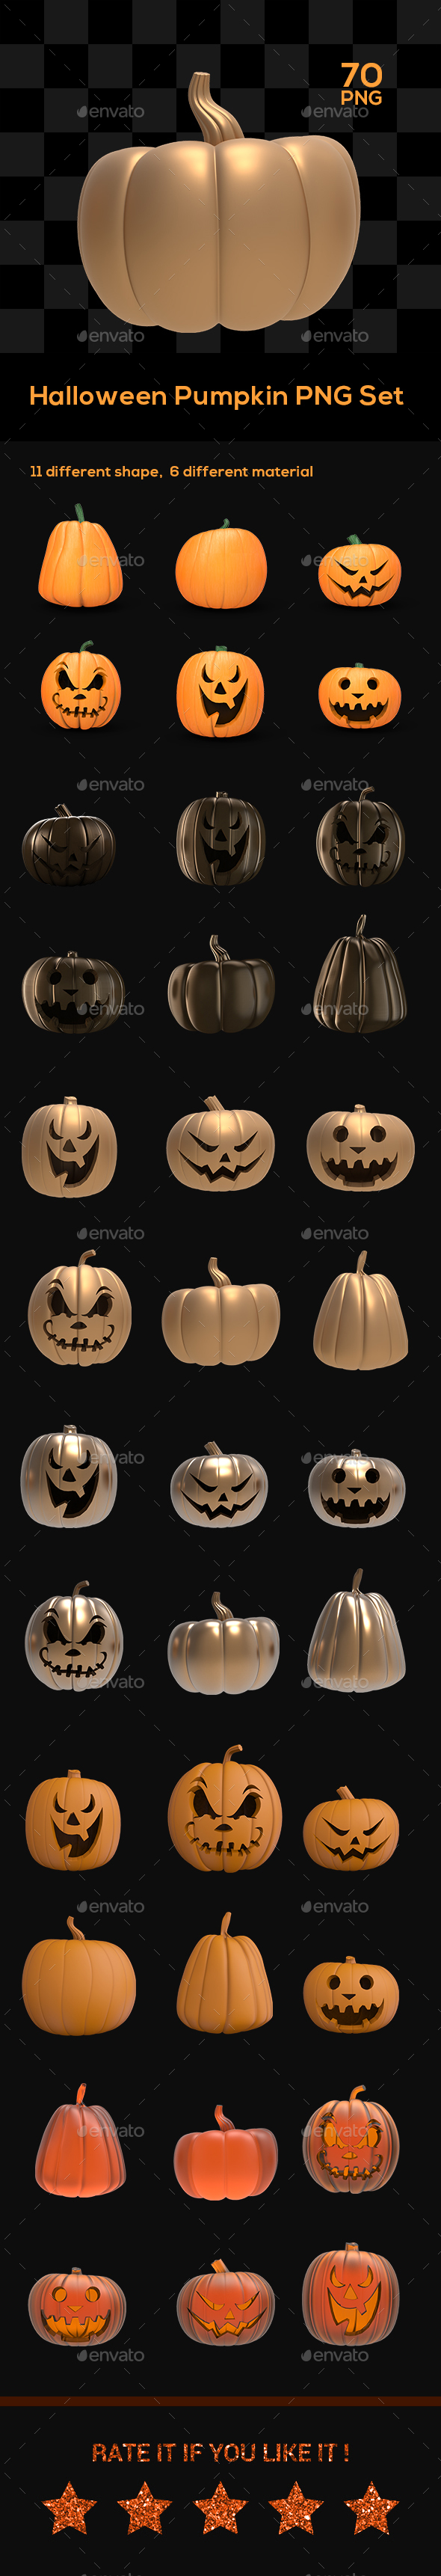 Halloween Pumpkin PNG Set - Objects 3D Renders